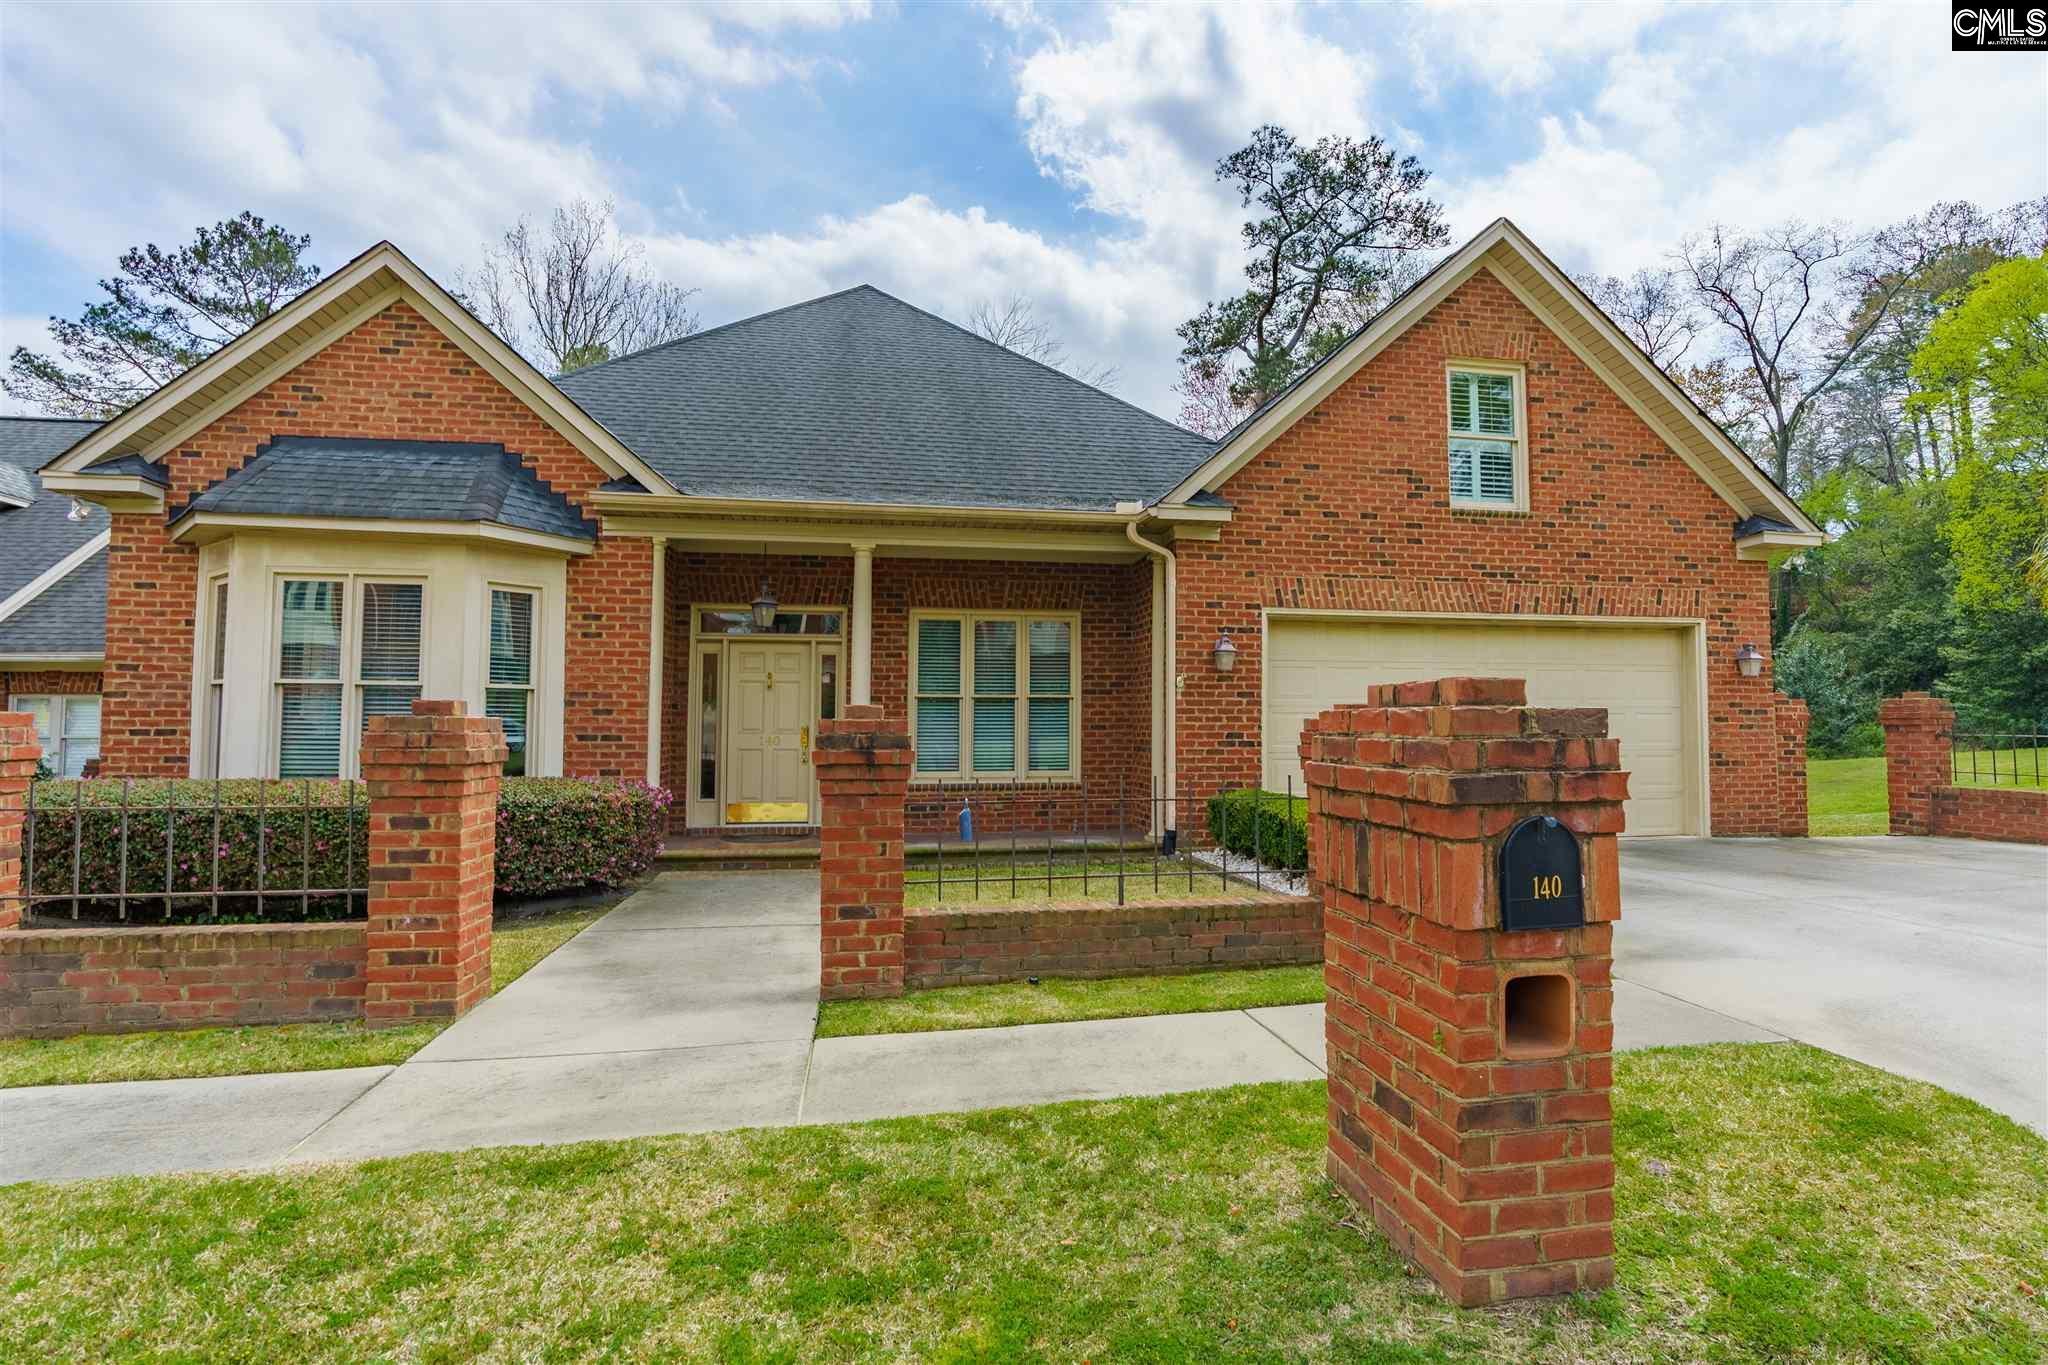 140 Berry Tree Columbia, SC 29223